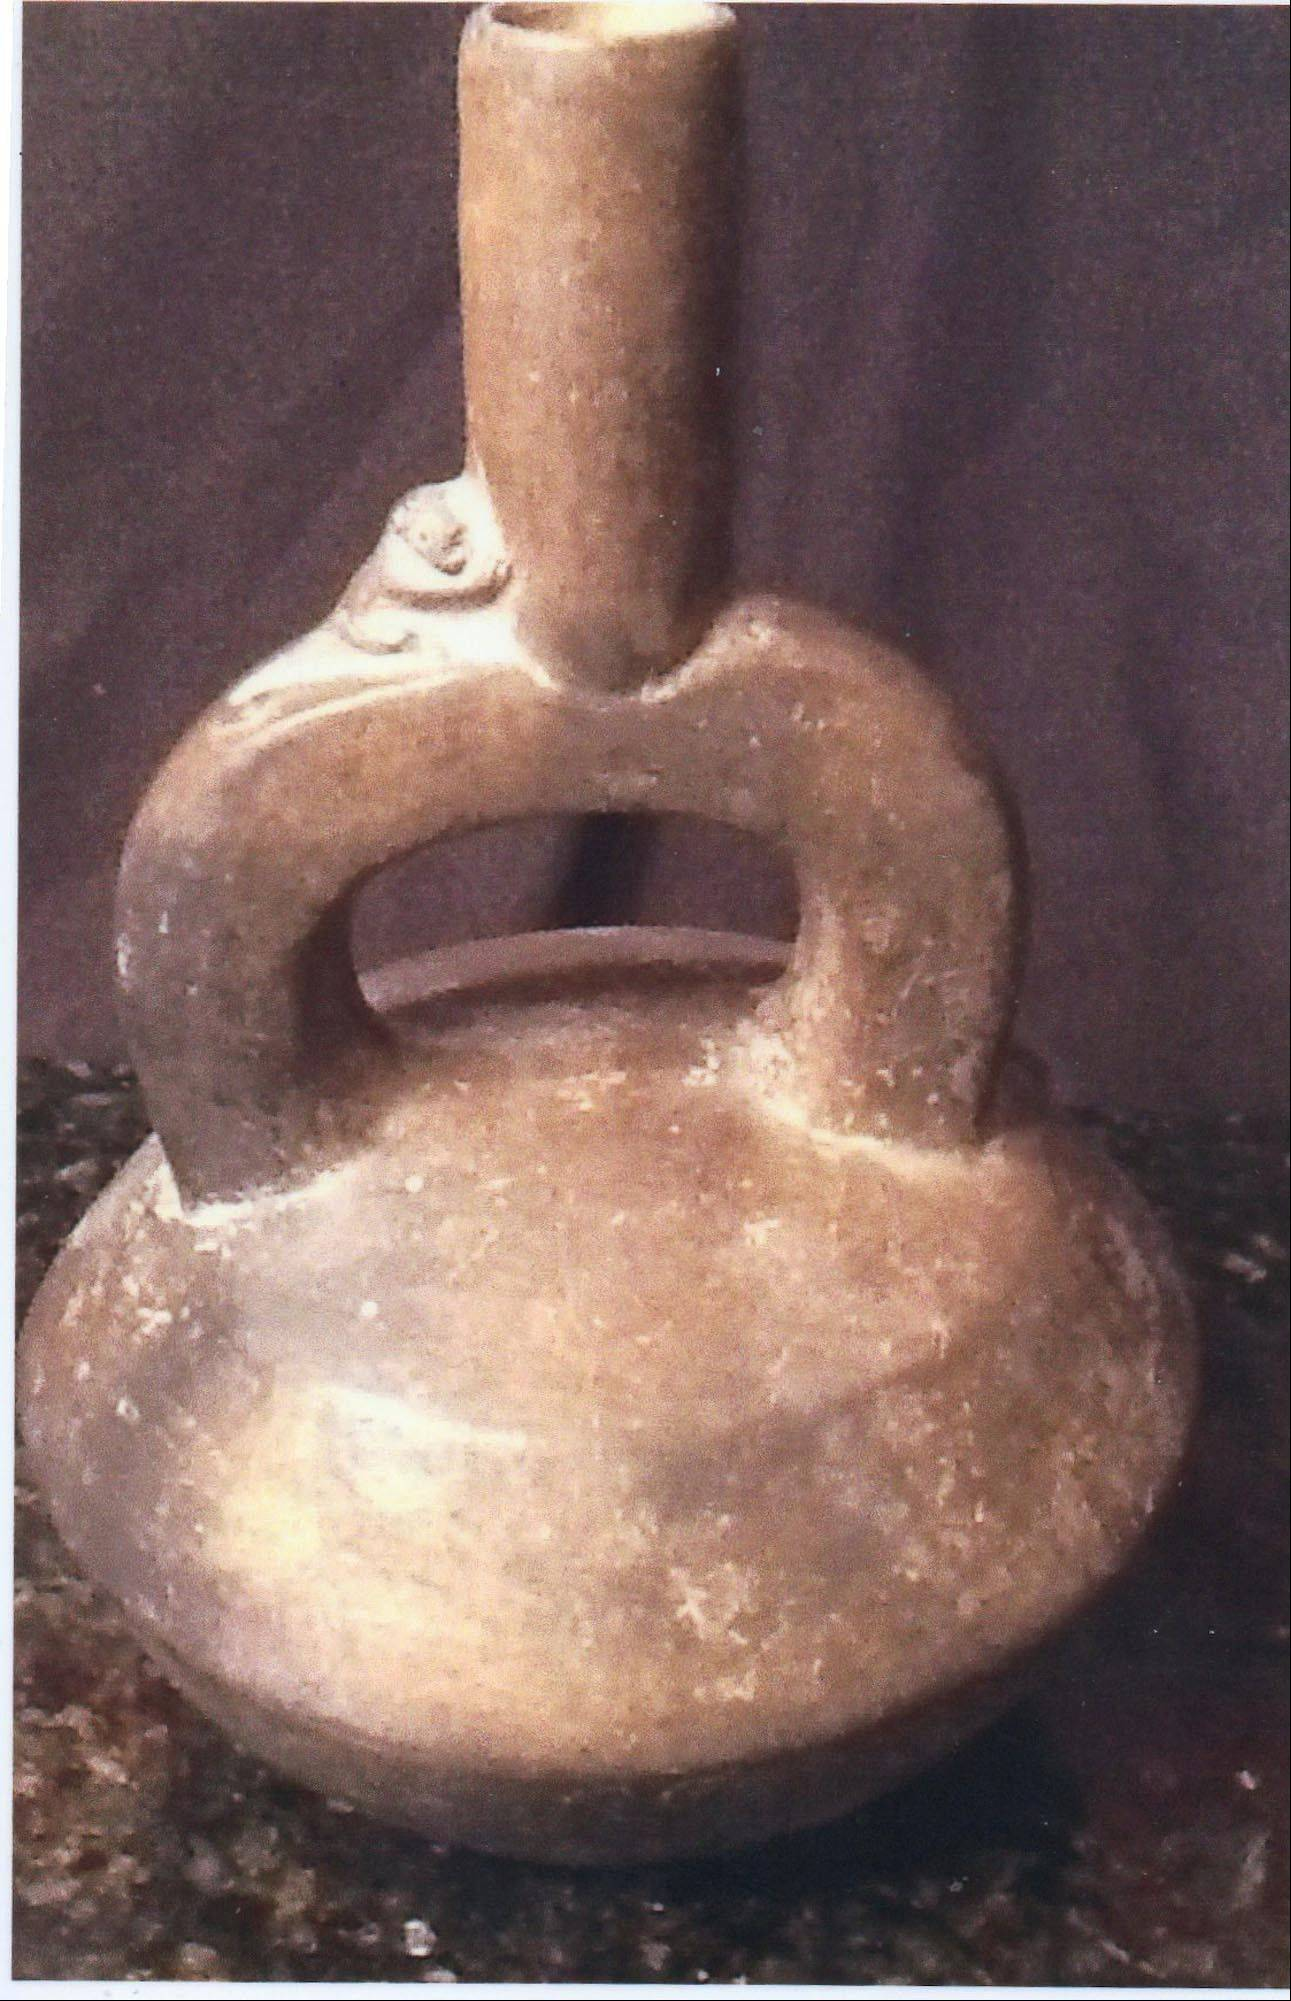 This stirrup vessel is a form popular with pre-Columbian people mainly located in Peru -- but is it old?